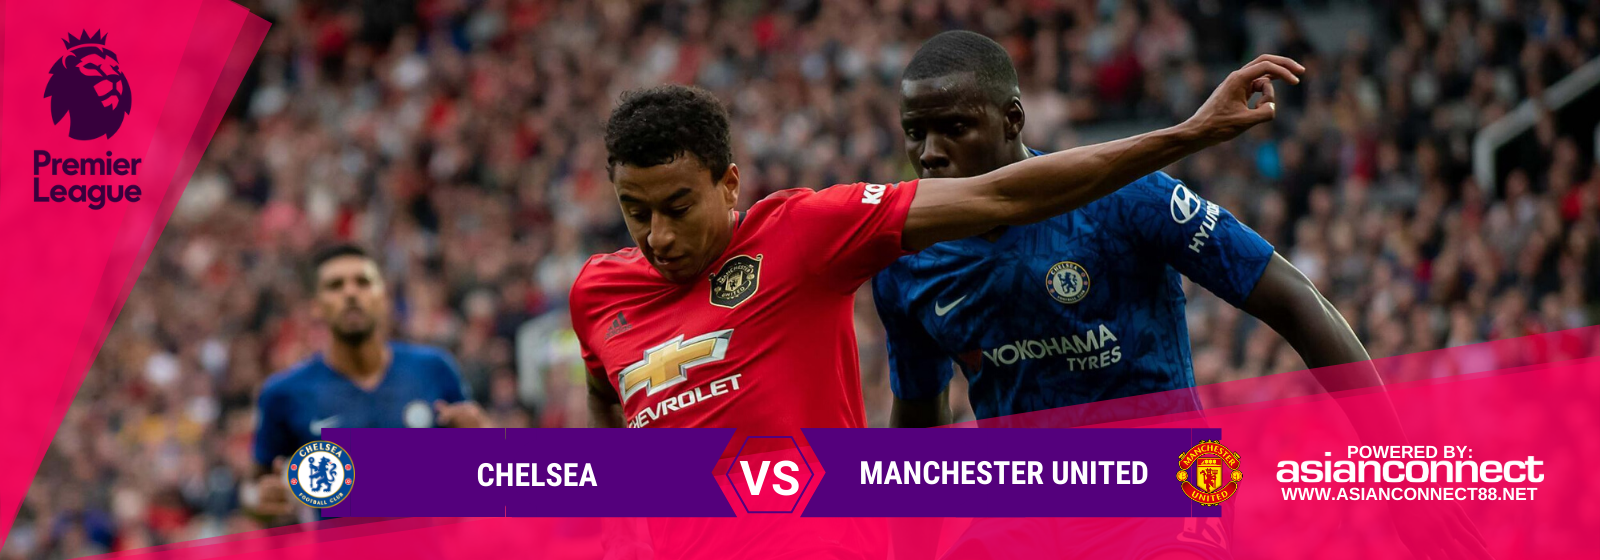 Asianconnect: Chelsea vs Manchester United Odds for February 17, 2020